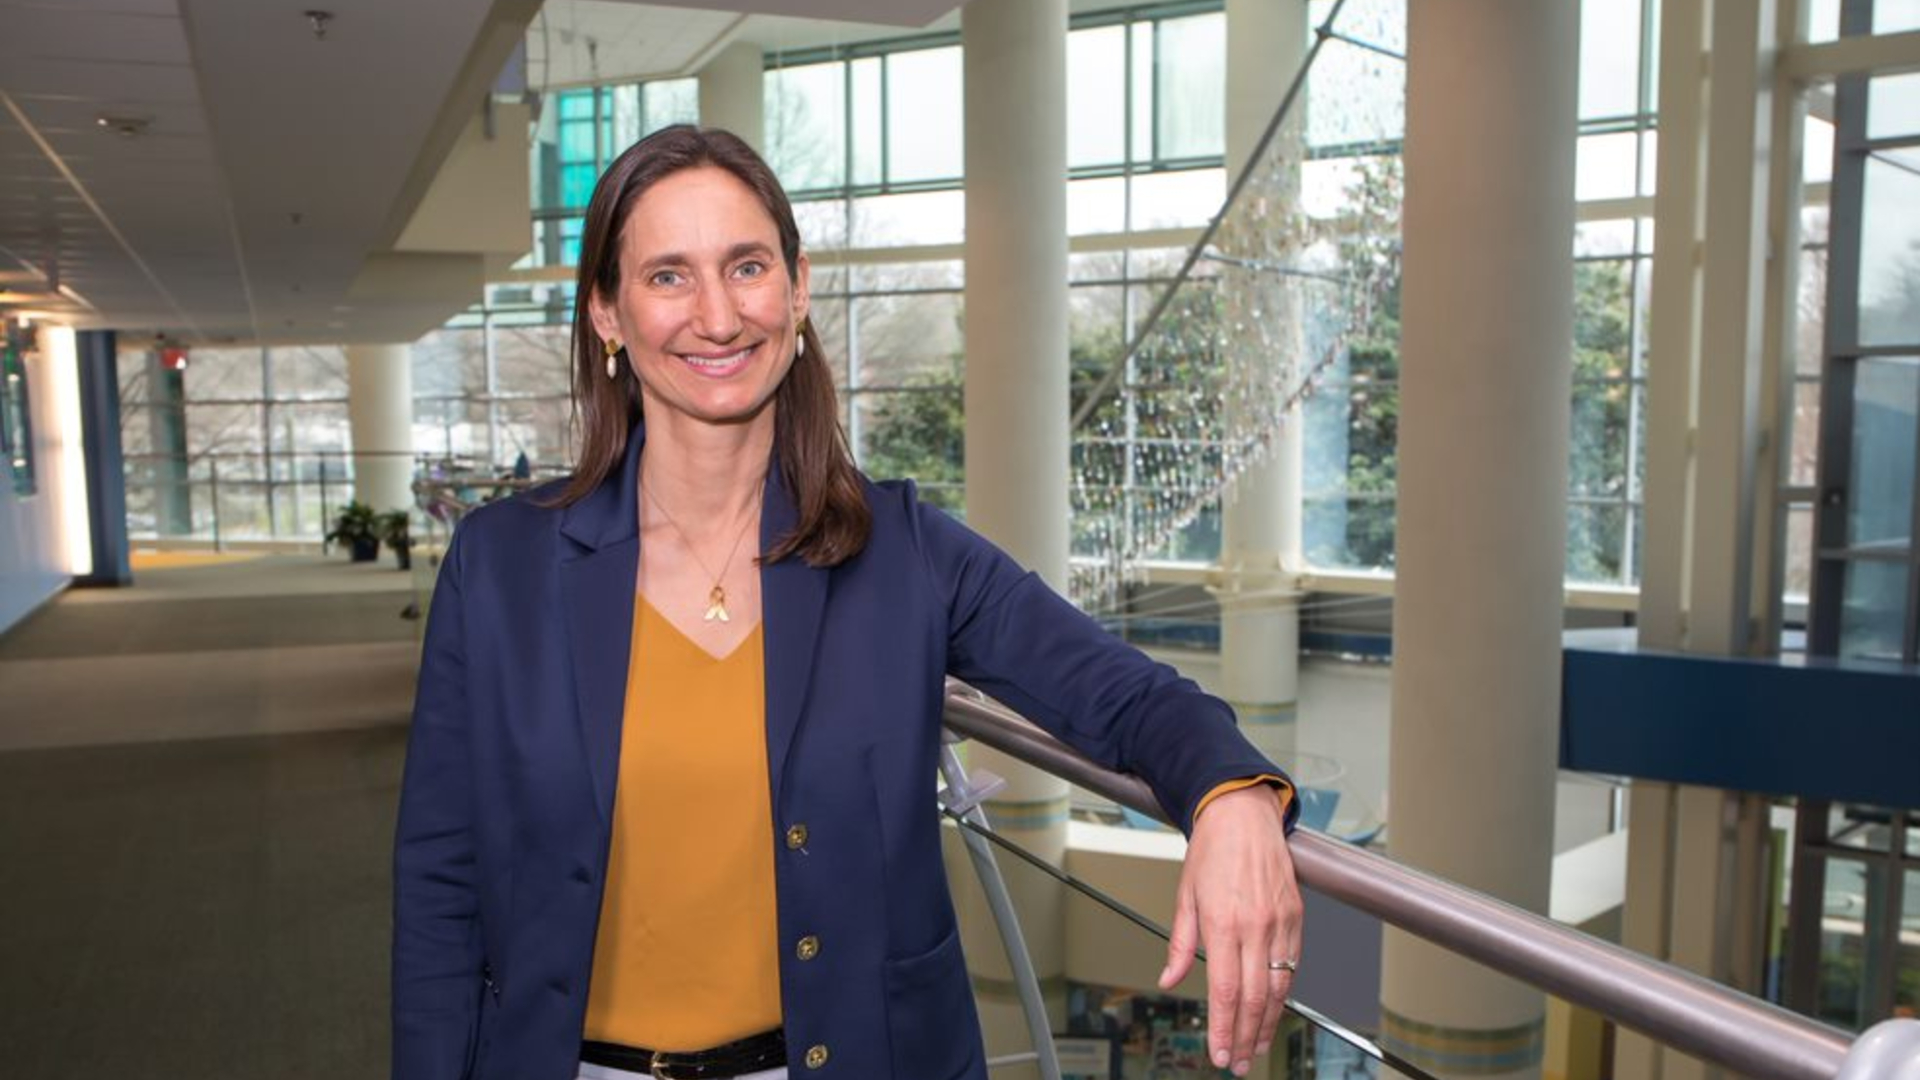 Atrium Health Levine Children's is pleased to announce the appointment of Dr. Giselle Sholler, MSc, a pediatric oncologist, as the director of the Isabella Santos Foundation Solid and Rare Tumor Program at Levine Children's, effective immediately